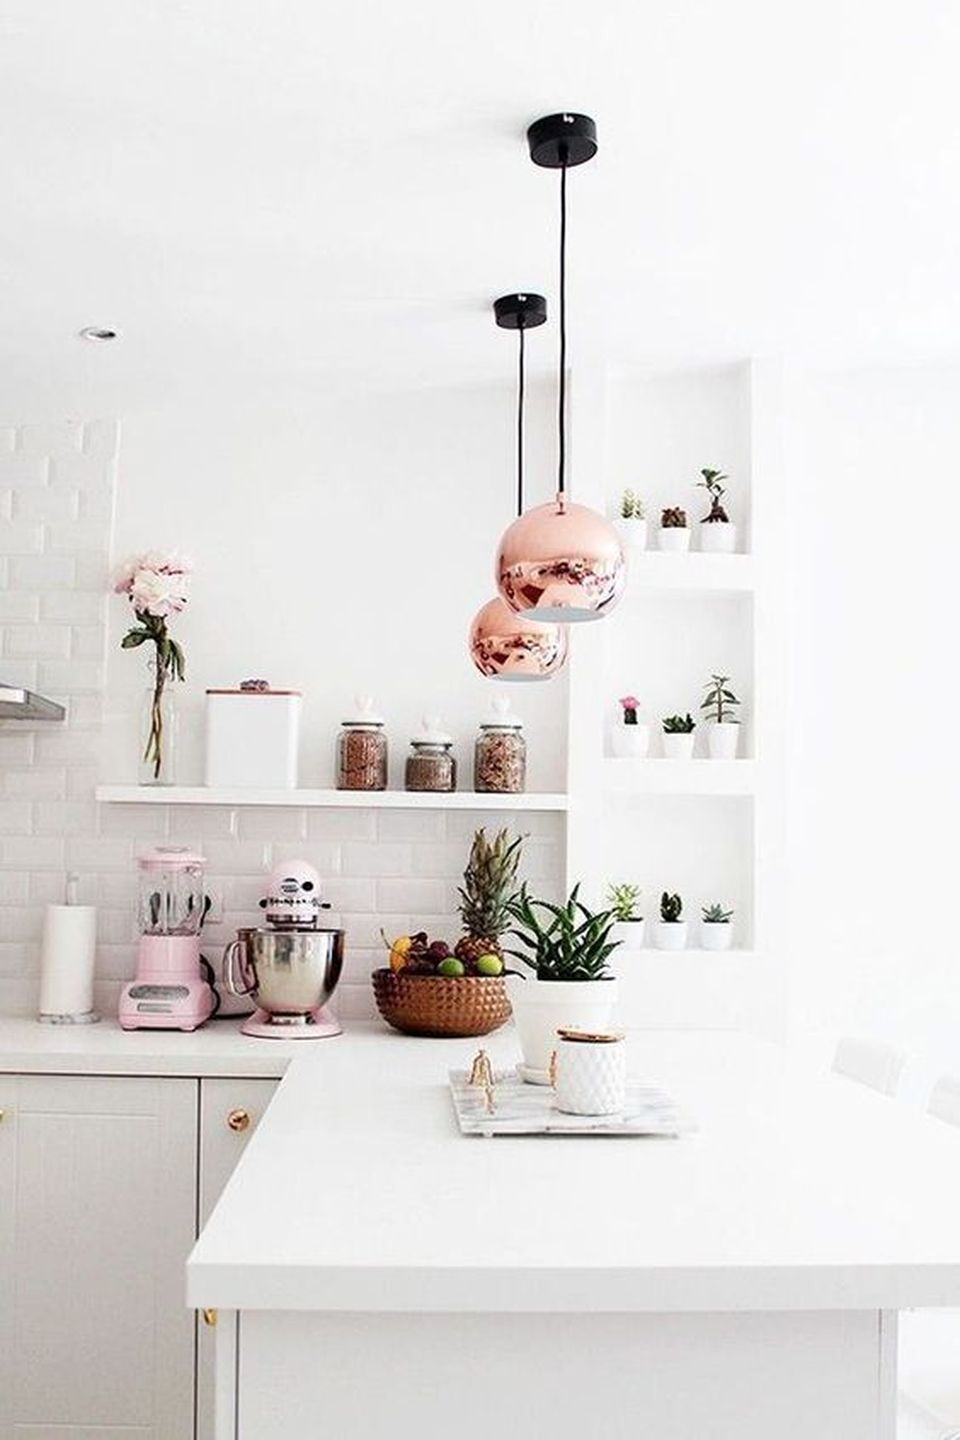 70 Majestic Copper and Rose Gold Kitchen Themes Decorations - DecOMG